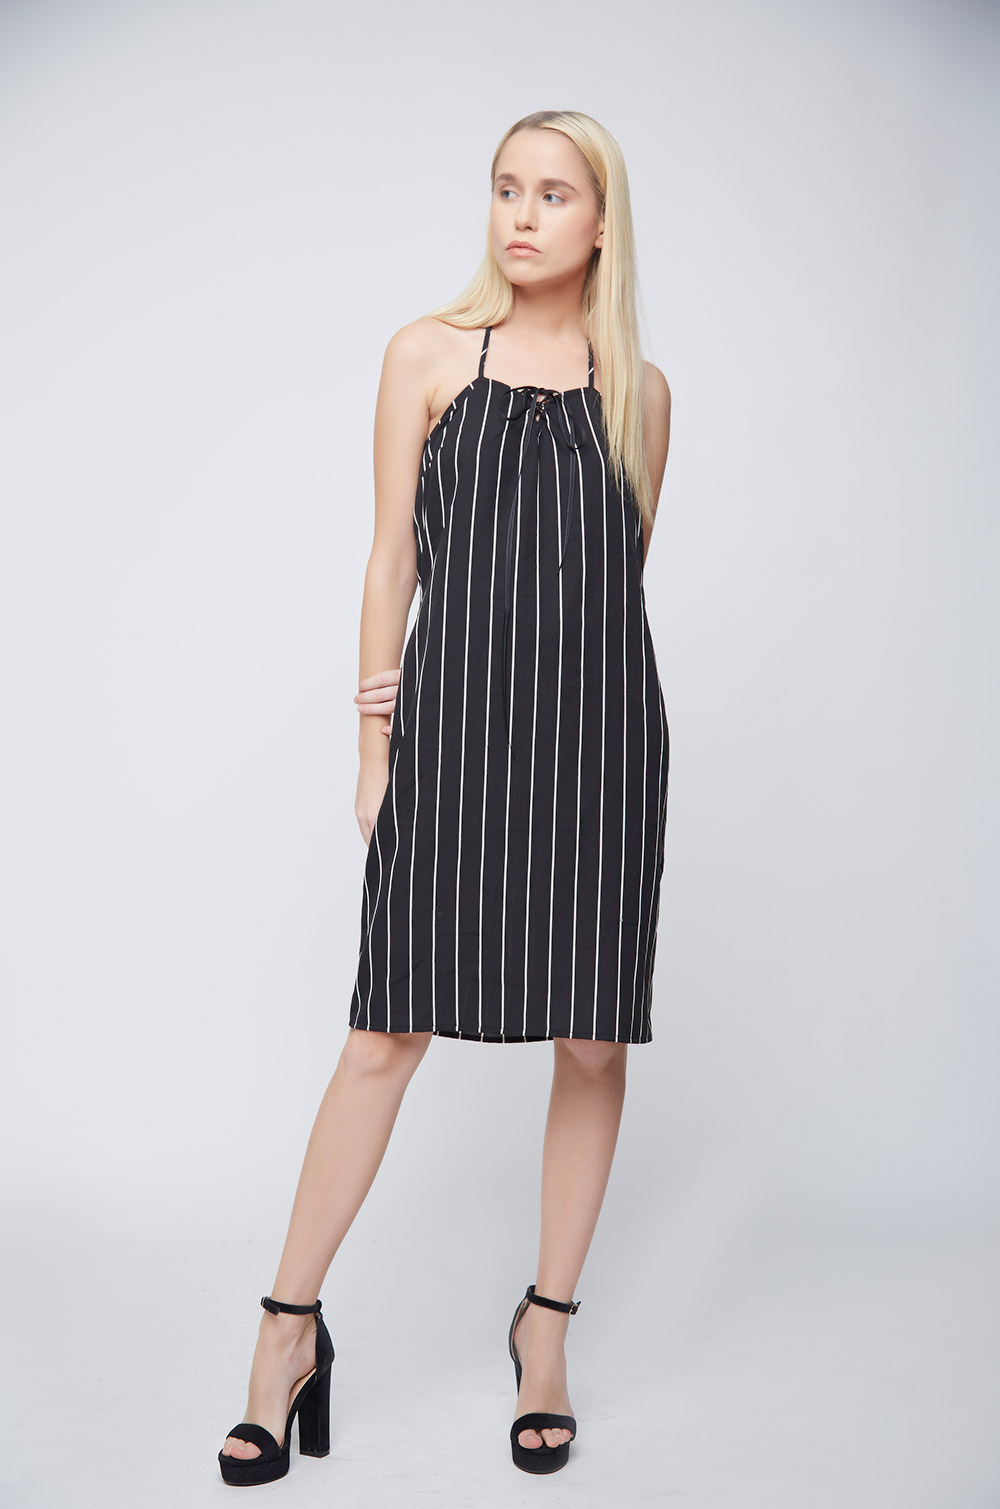 Black White Stripes Ramona Dress -1